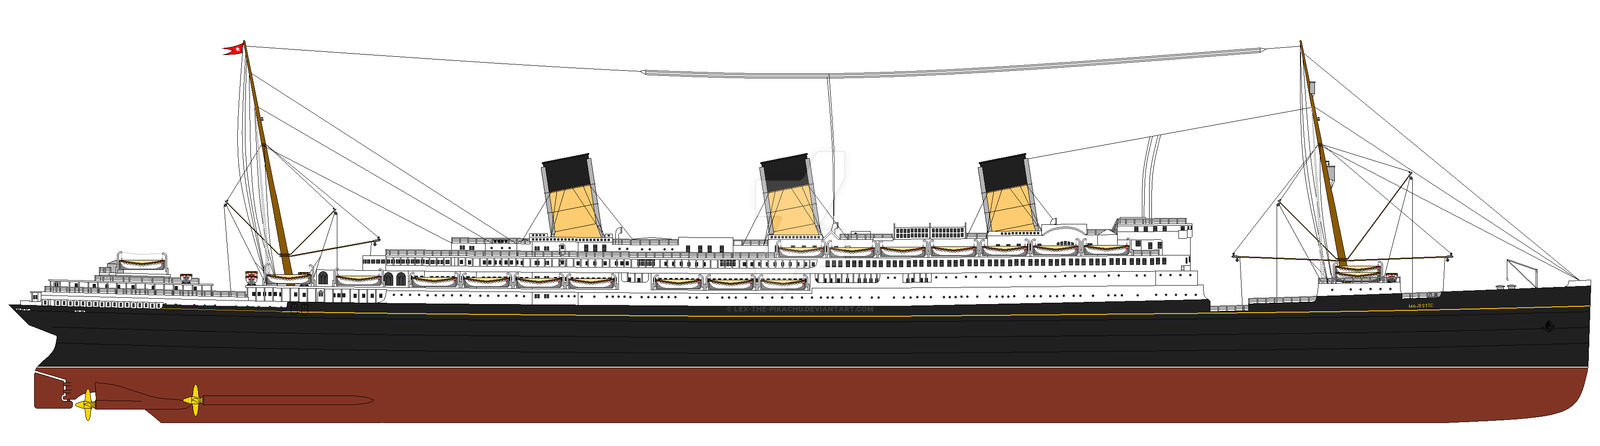 RMS Majestic WIP 10